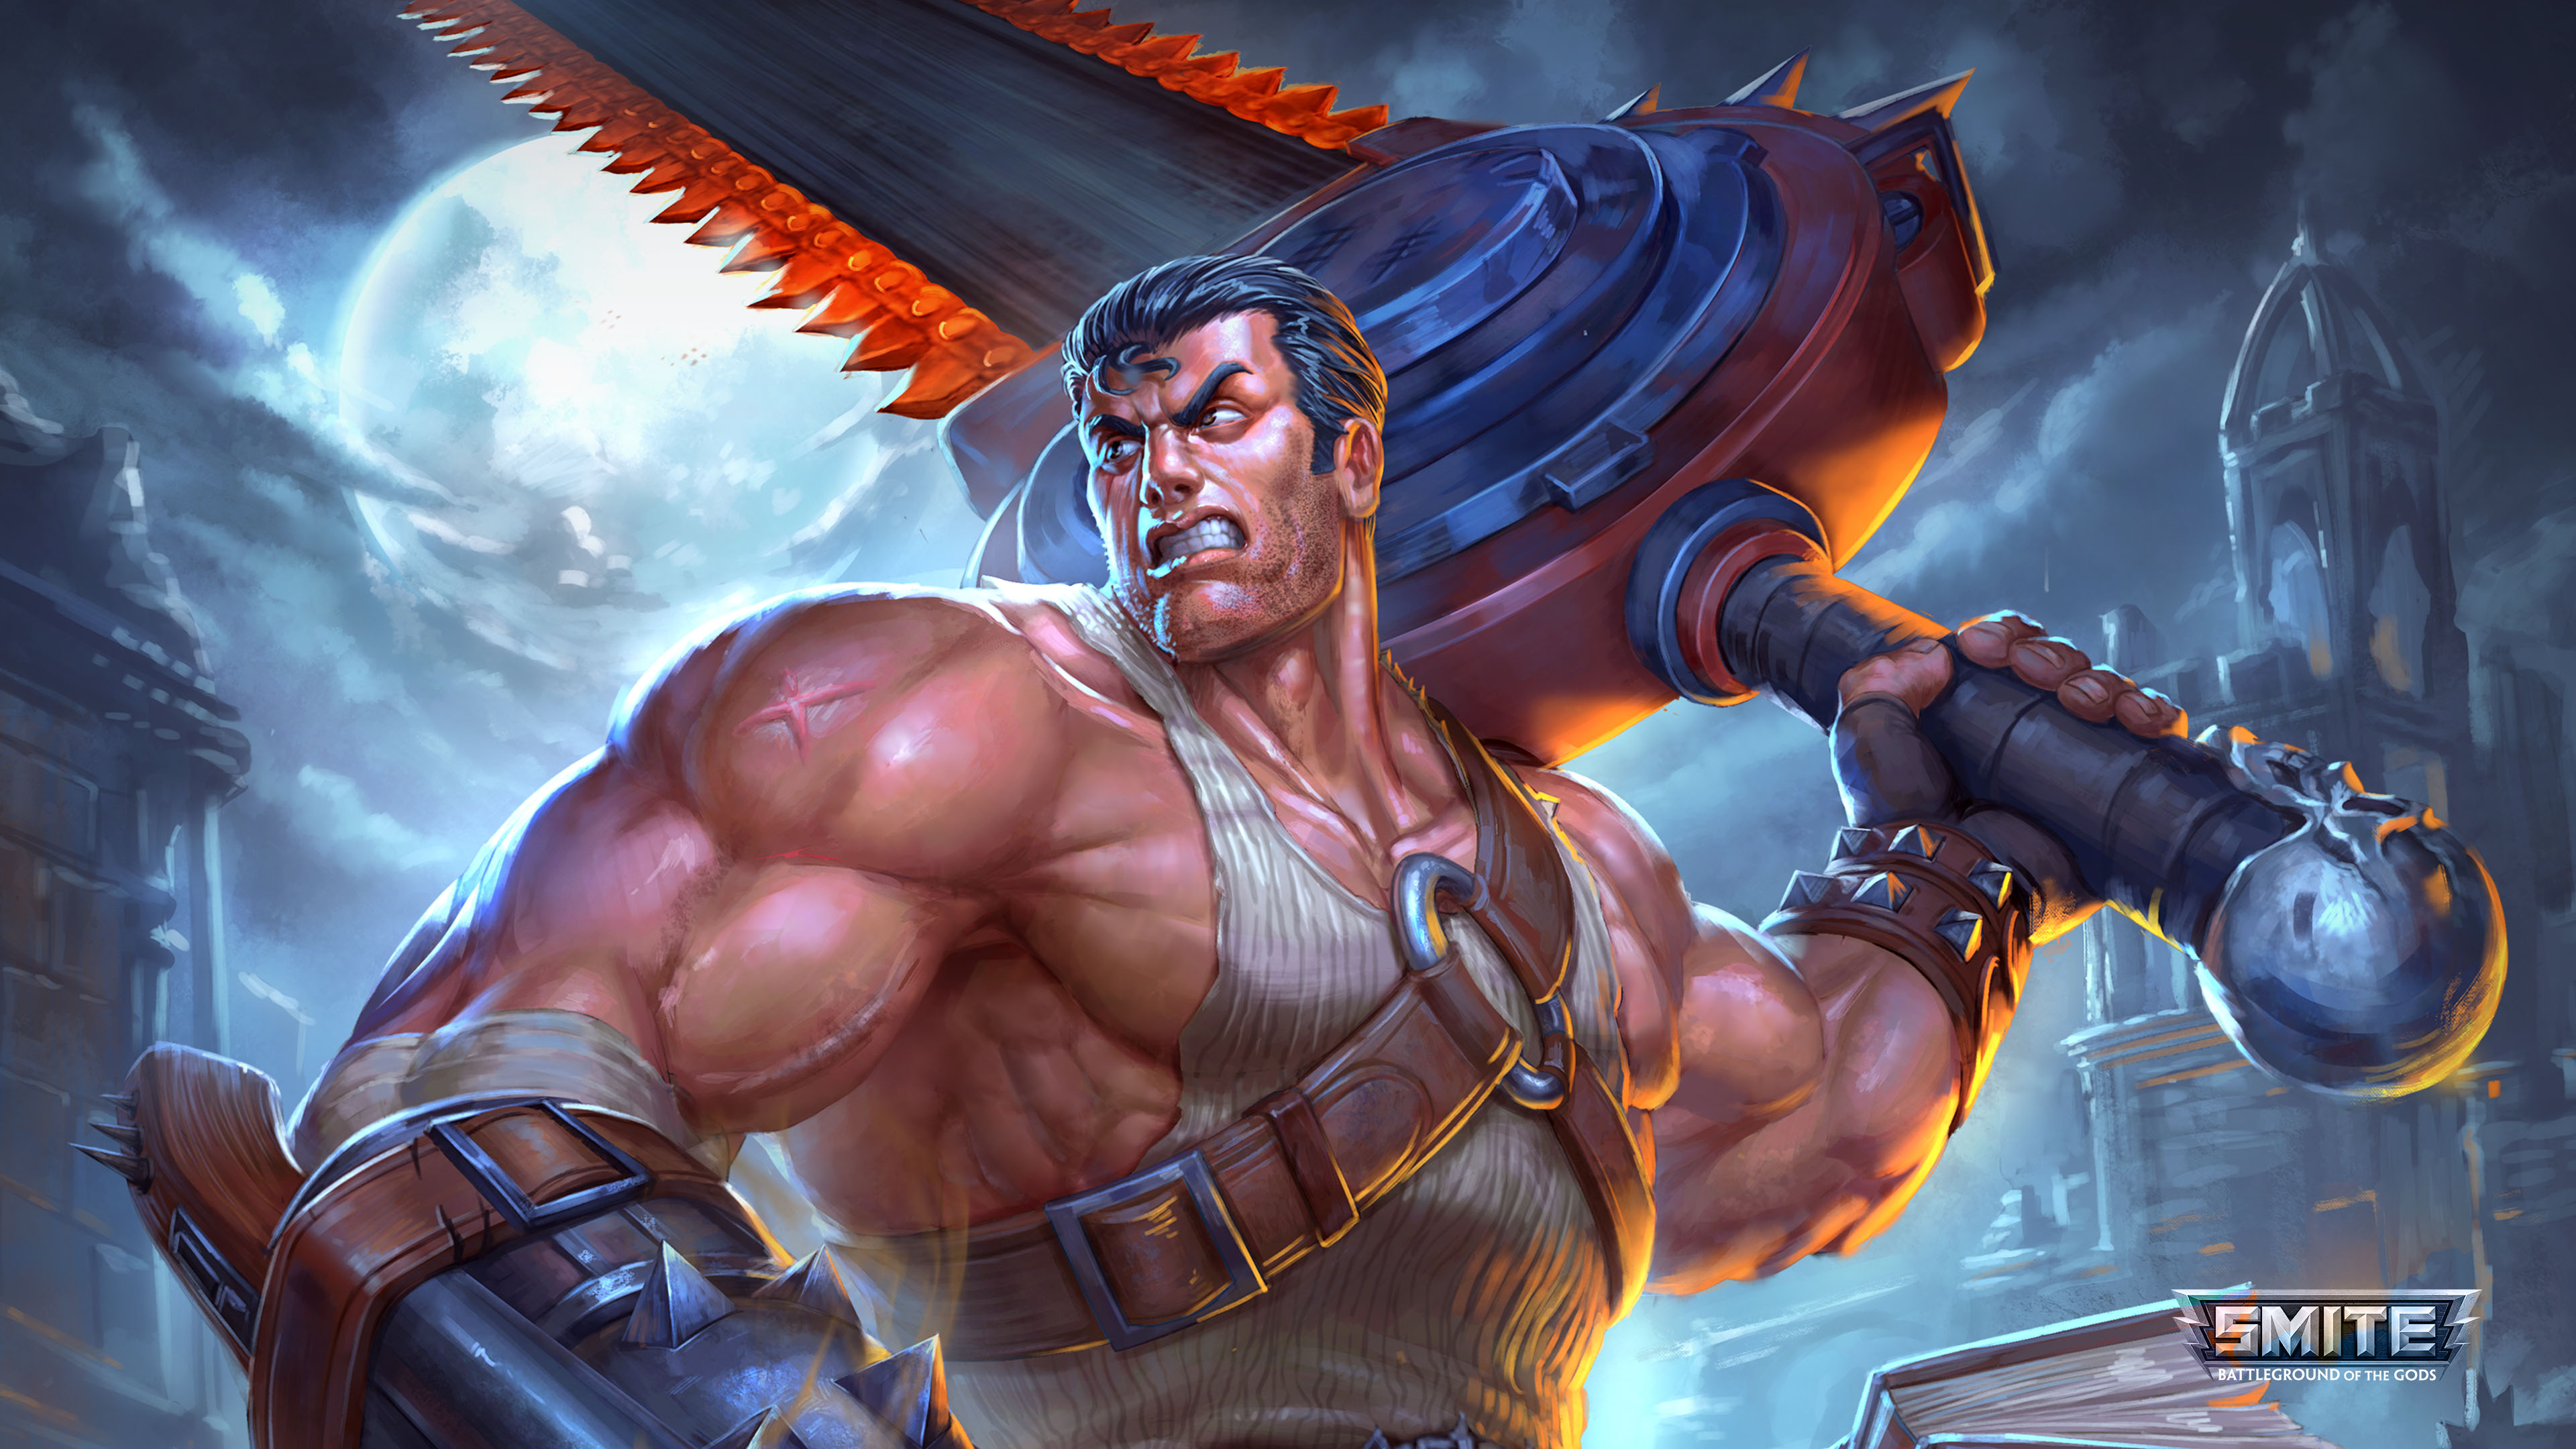 Smite 4k ultra hd wallpaper and background image 3840x2160 id774716 video game smite wallpaper voltagebd Image collections